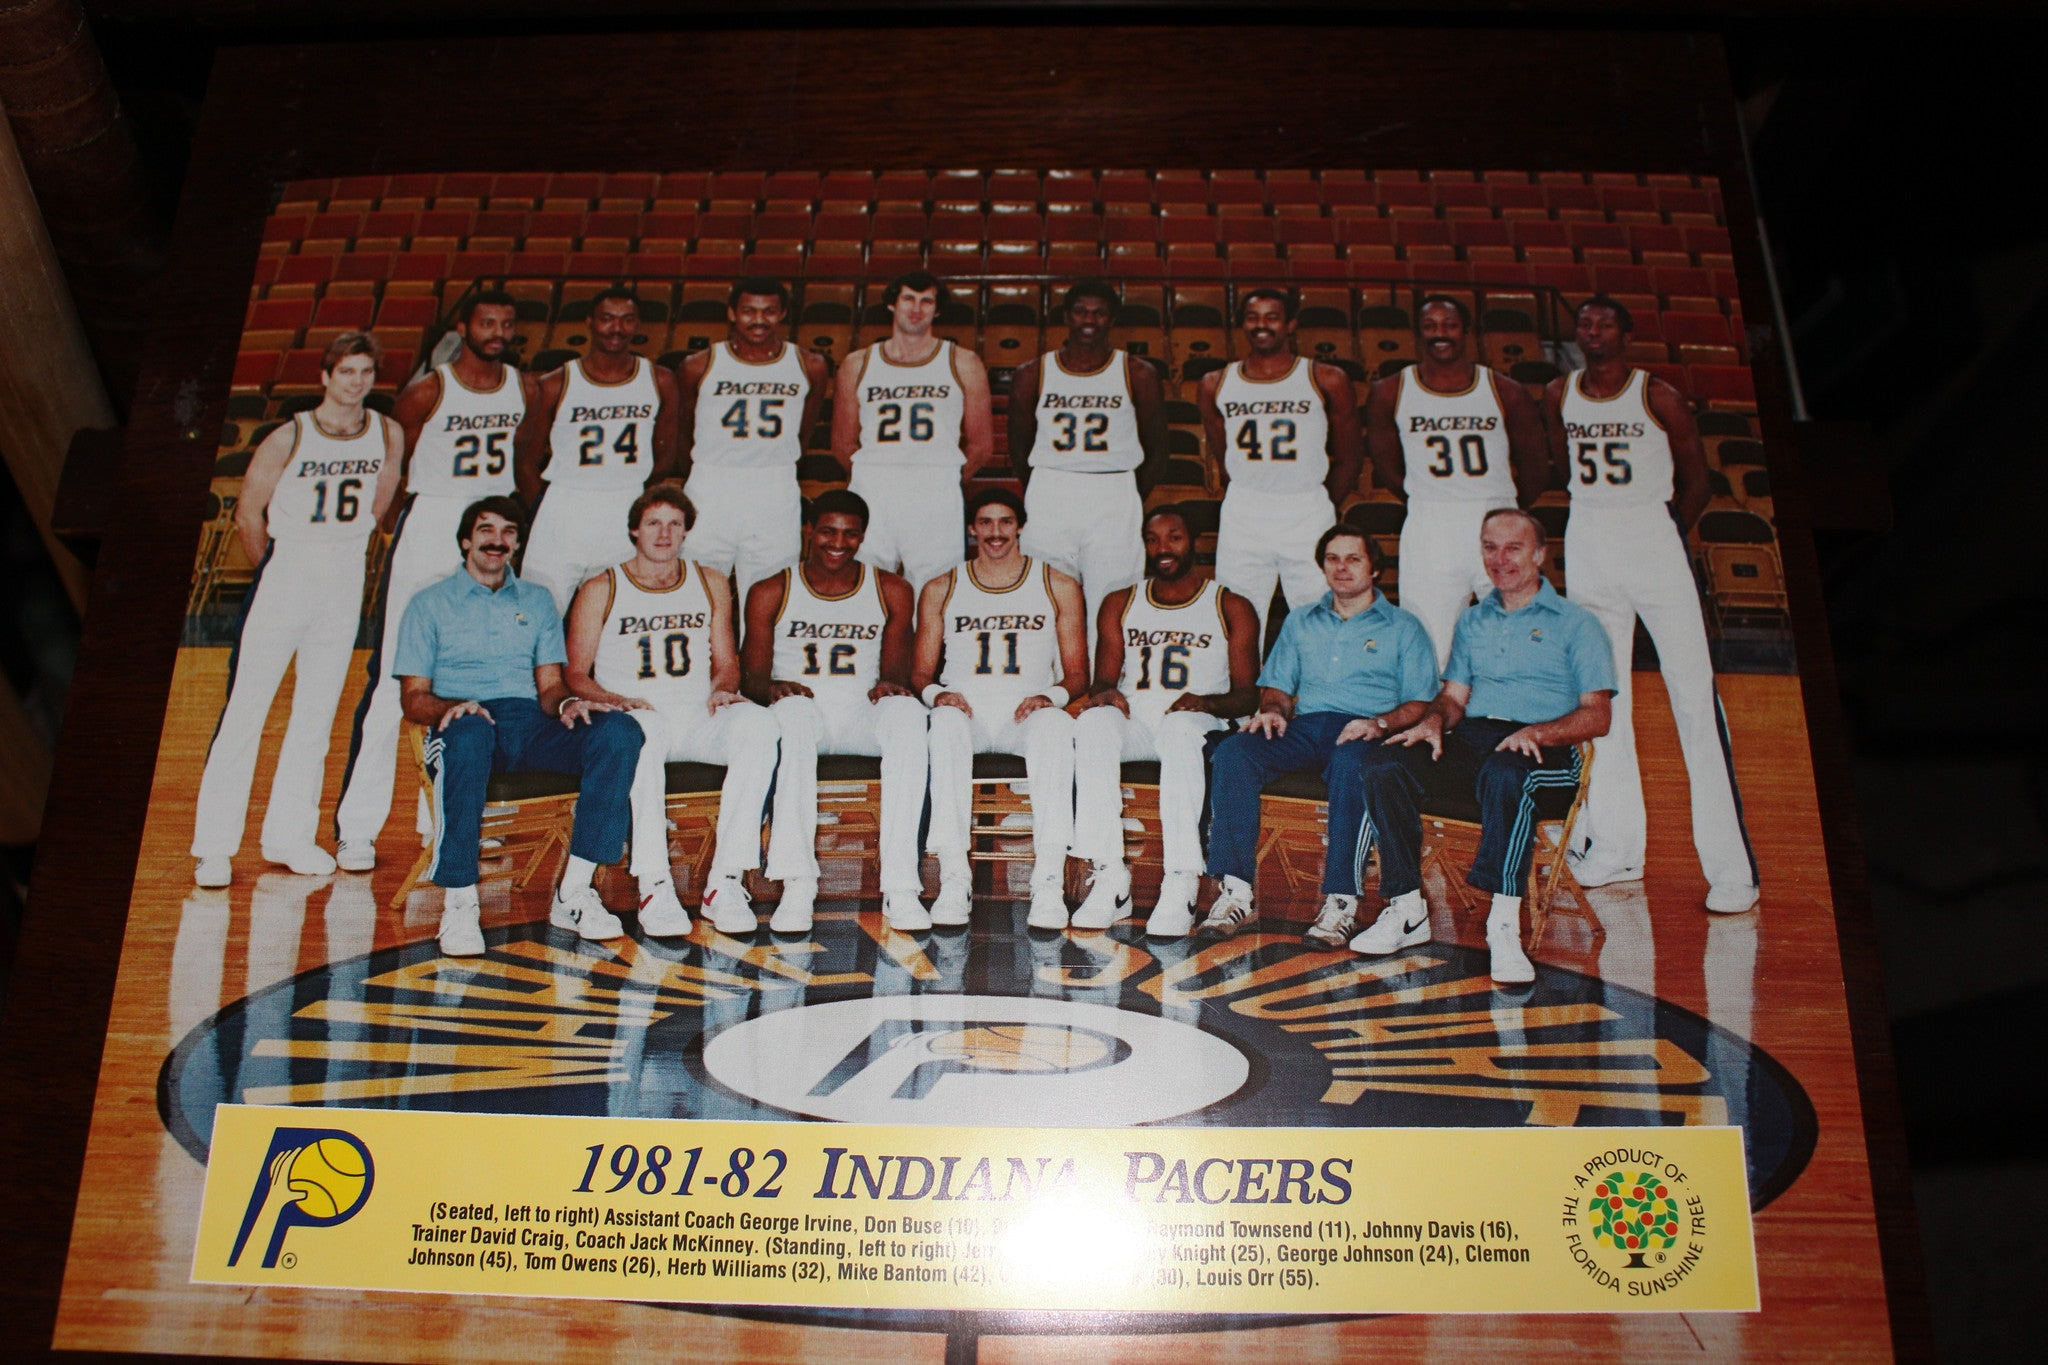 1981-82 Indiana Pacers Team Photo - Vintage Indy Sports